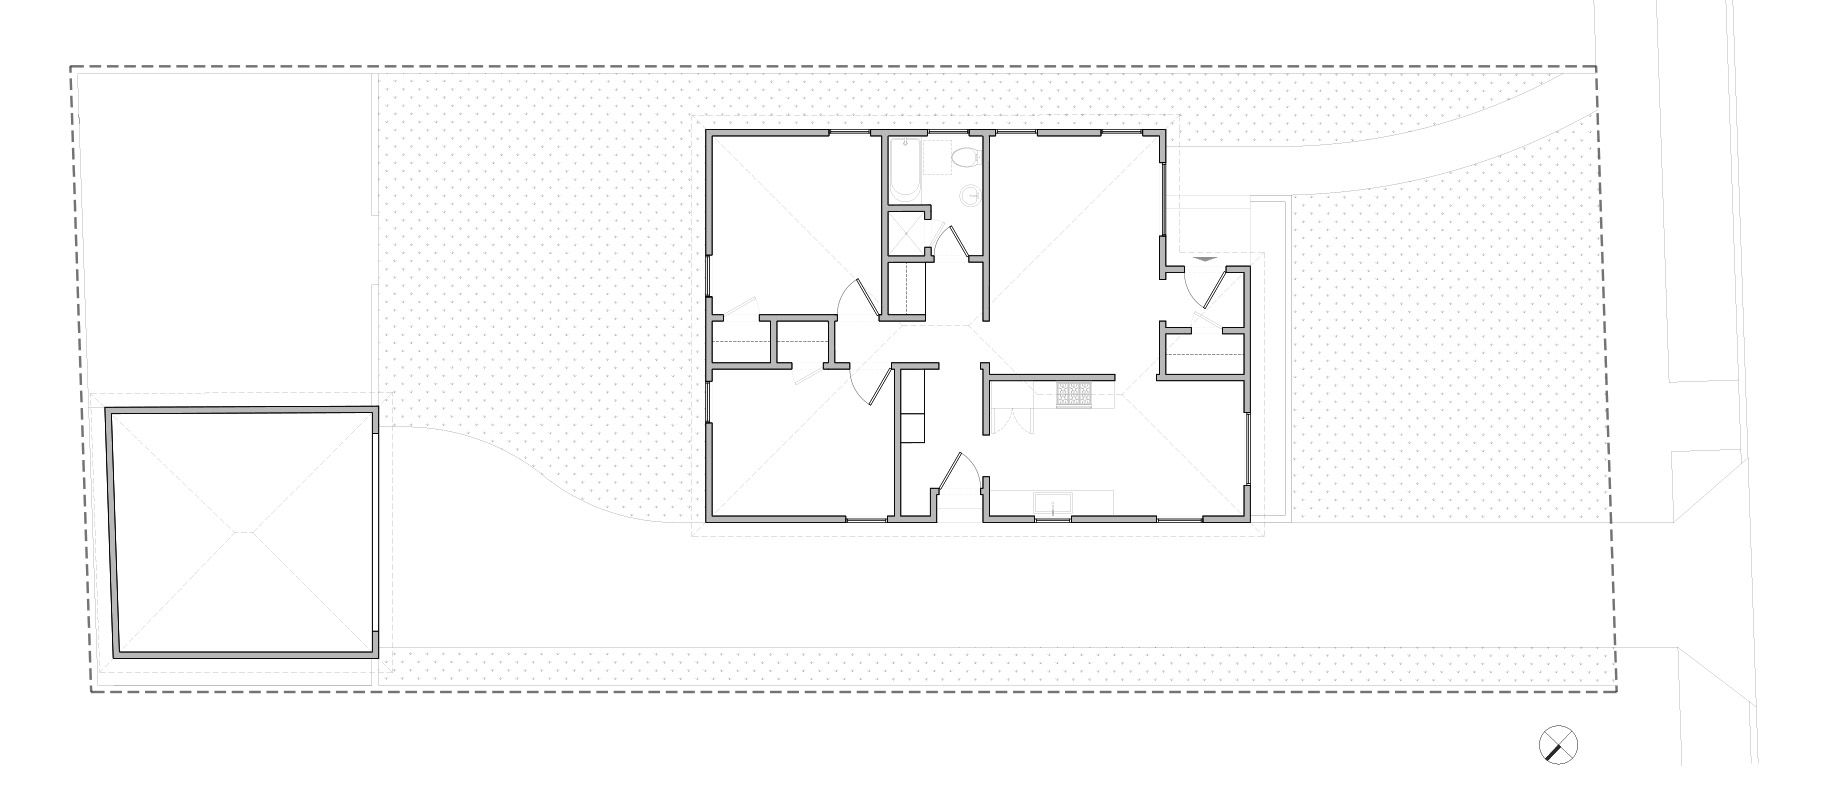 Plan of existing 1950's bungalow